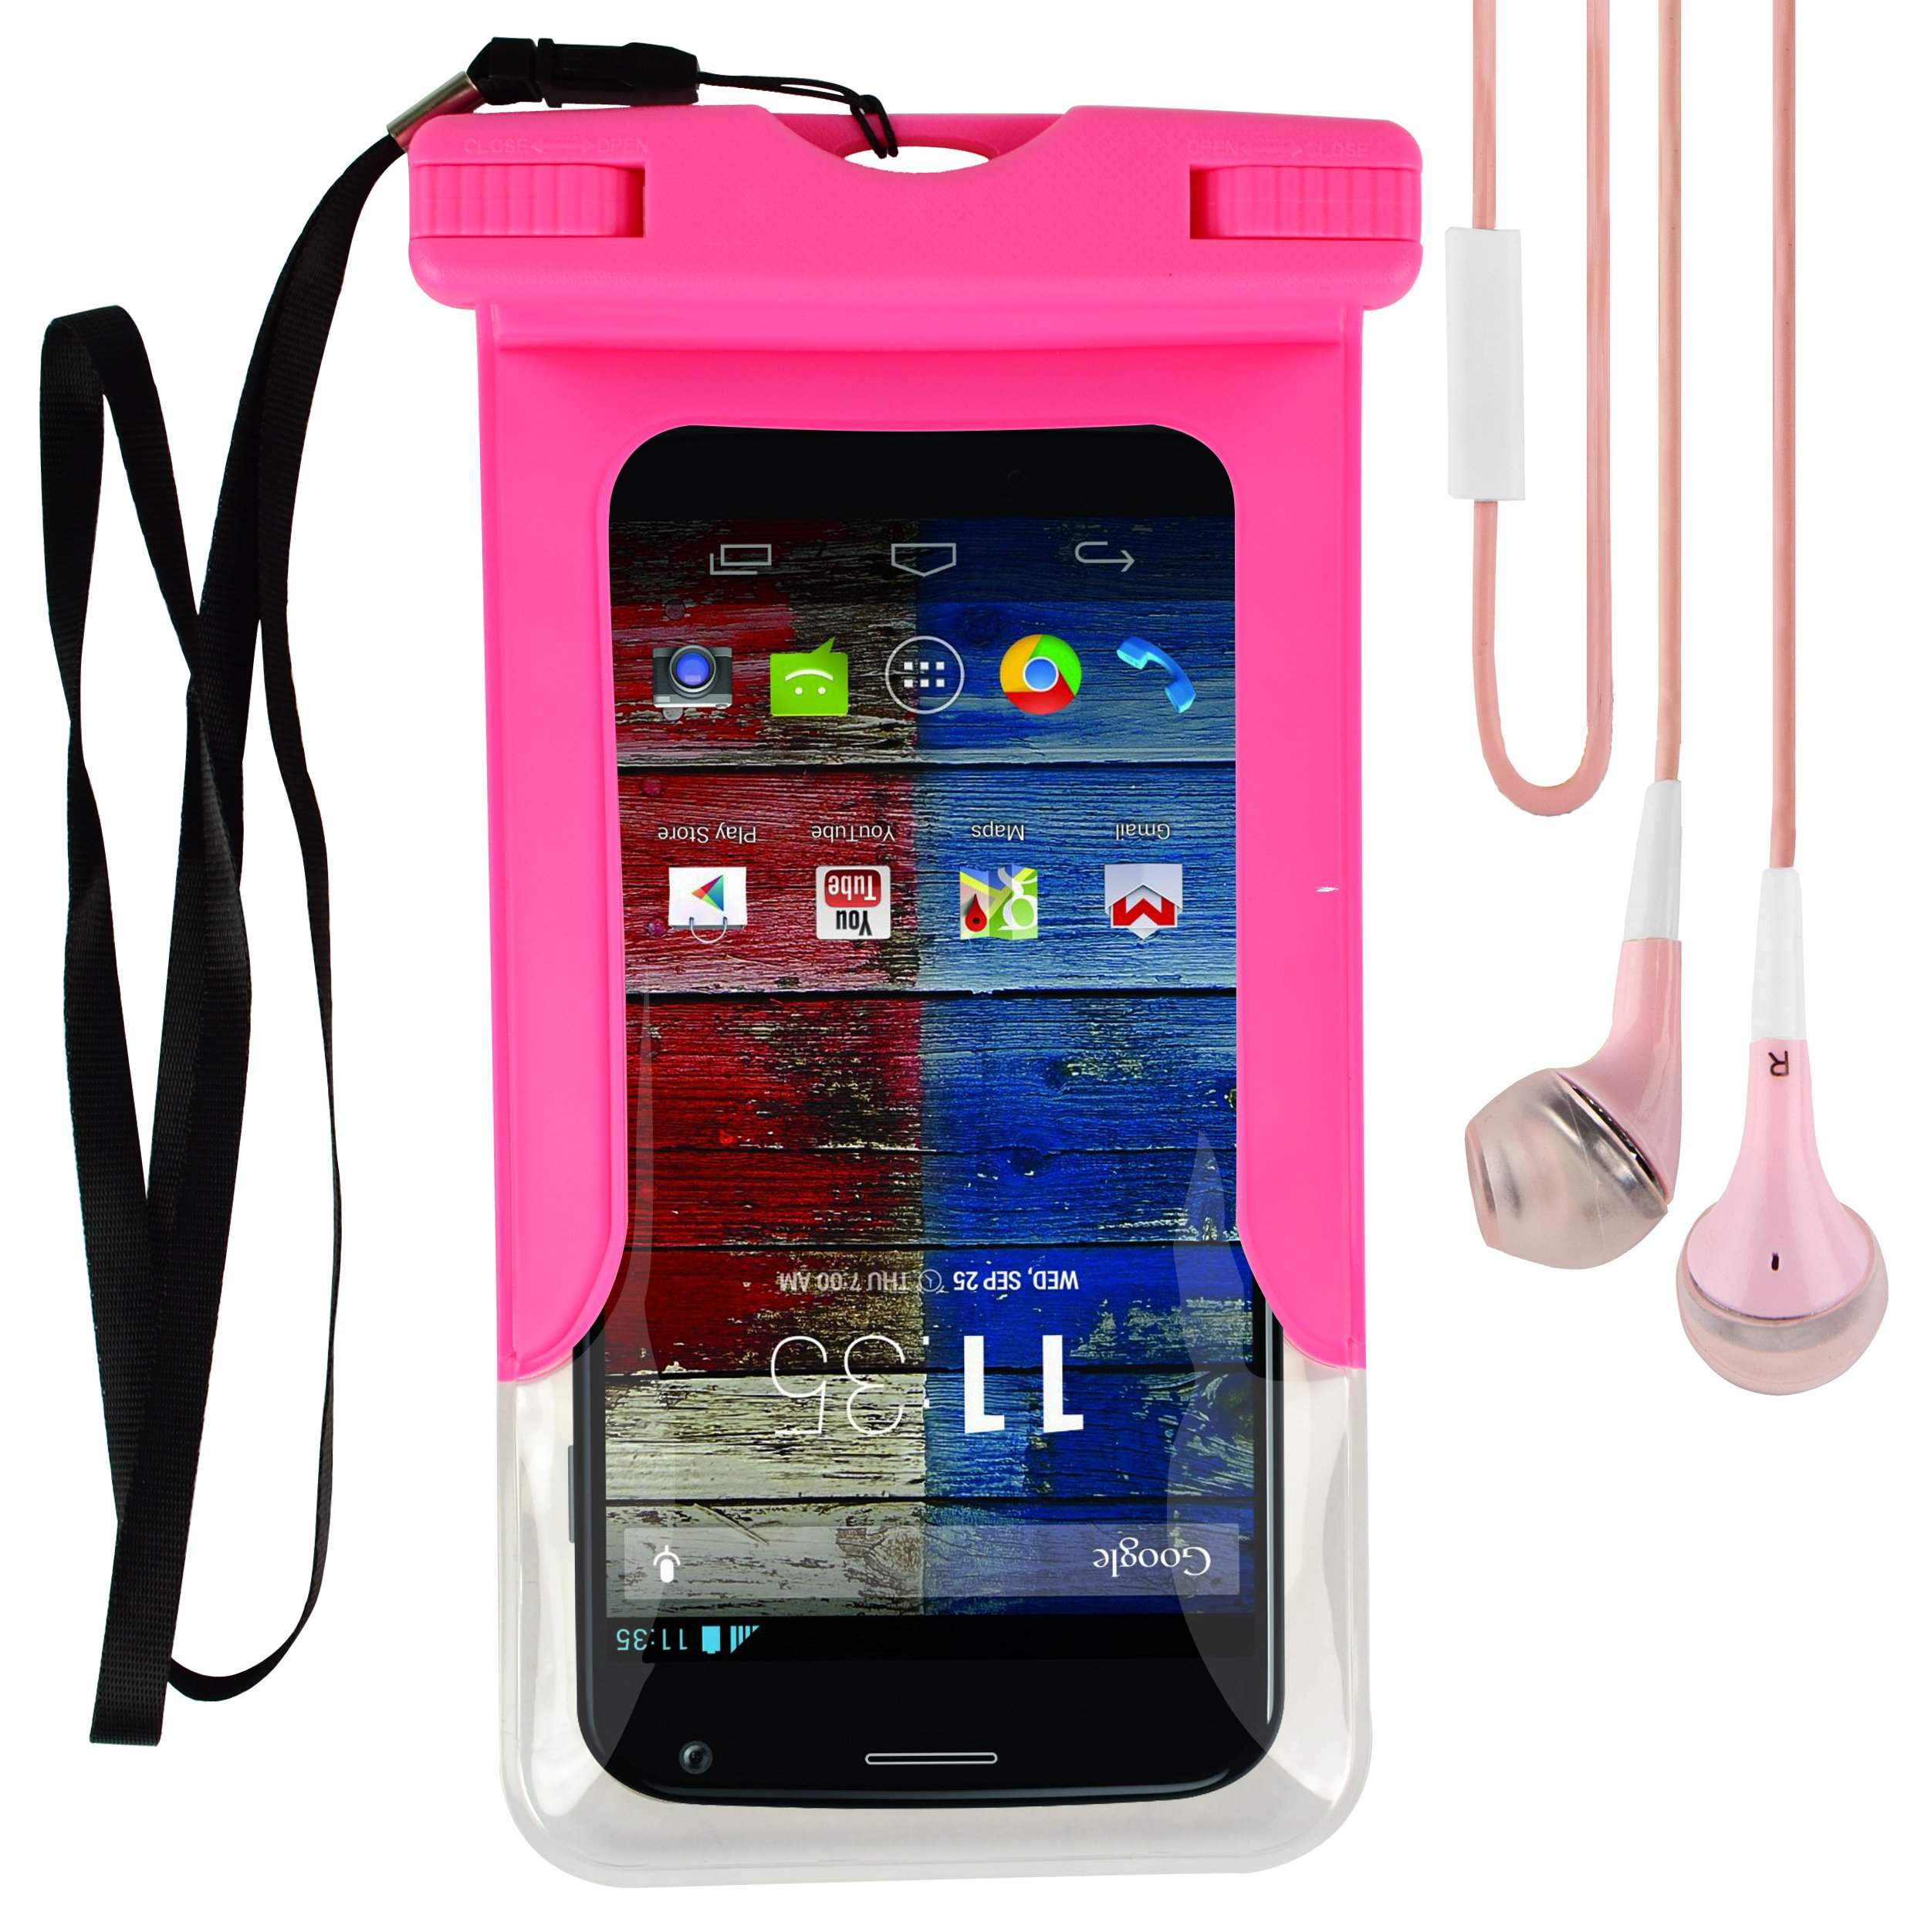 Universal Waterproof Case Cover Pouch Dry Bag with Touch Responsive Front and Back Transparent Screen Protector Windows & Strap for Motorola Droid Turbo/ Moto X/ G/ E Fit up to 5.5 Inch Android Phone + VG Earphones with MIC (Pink)